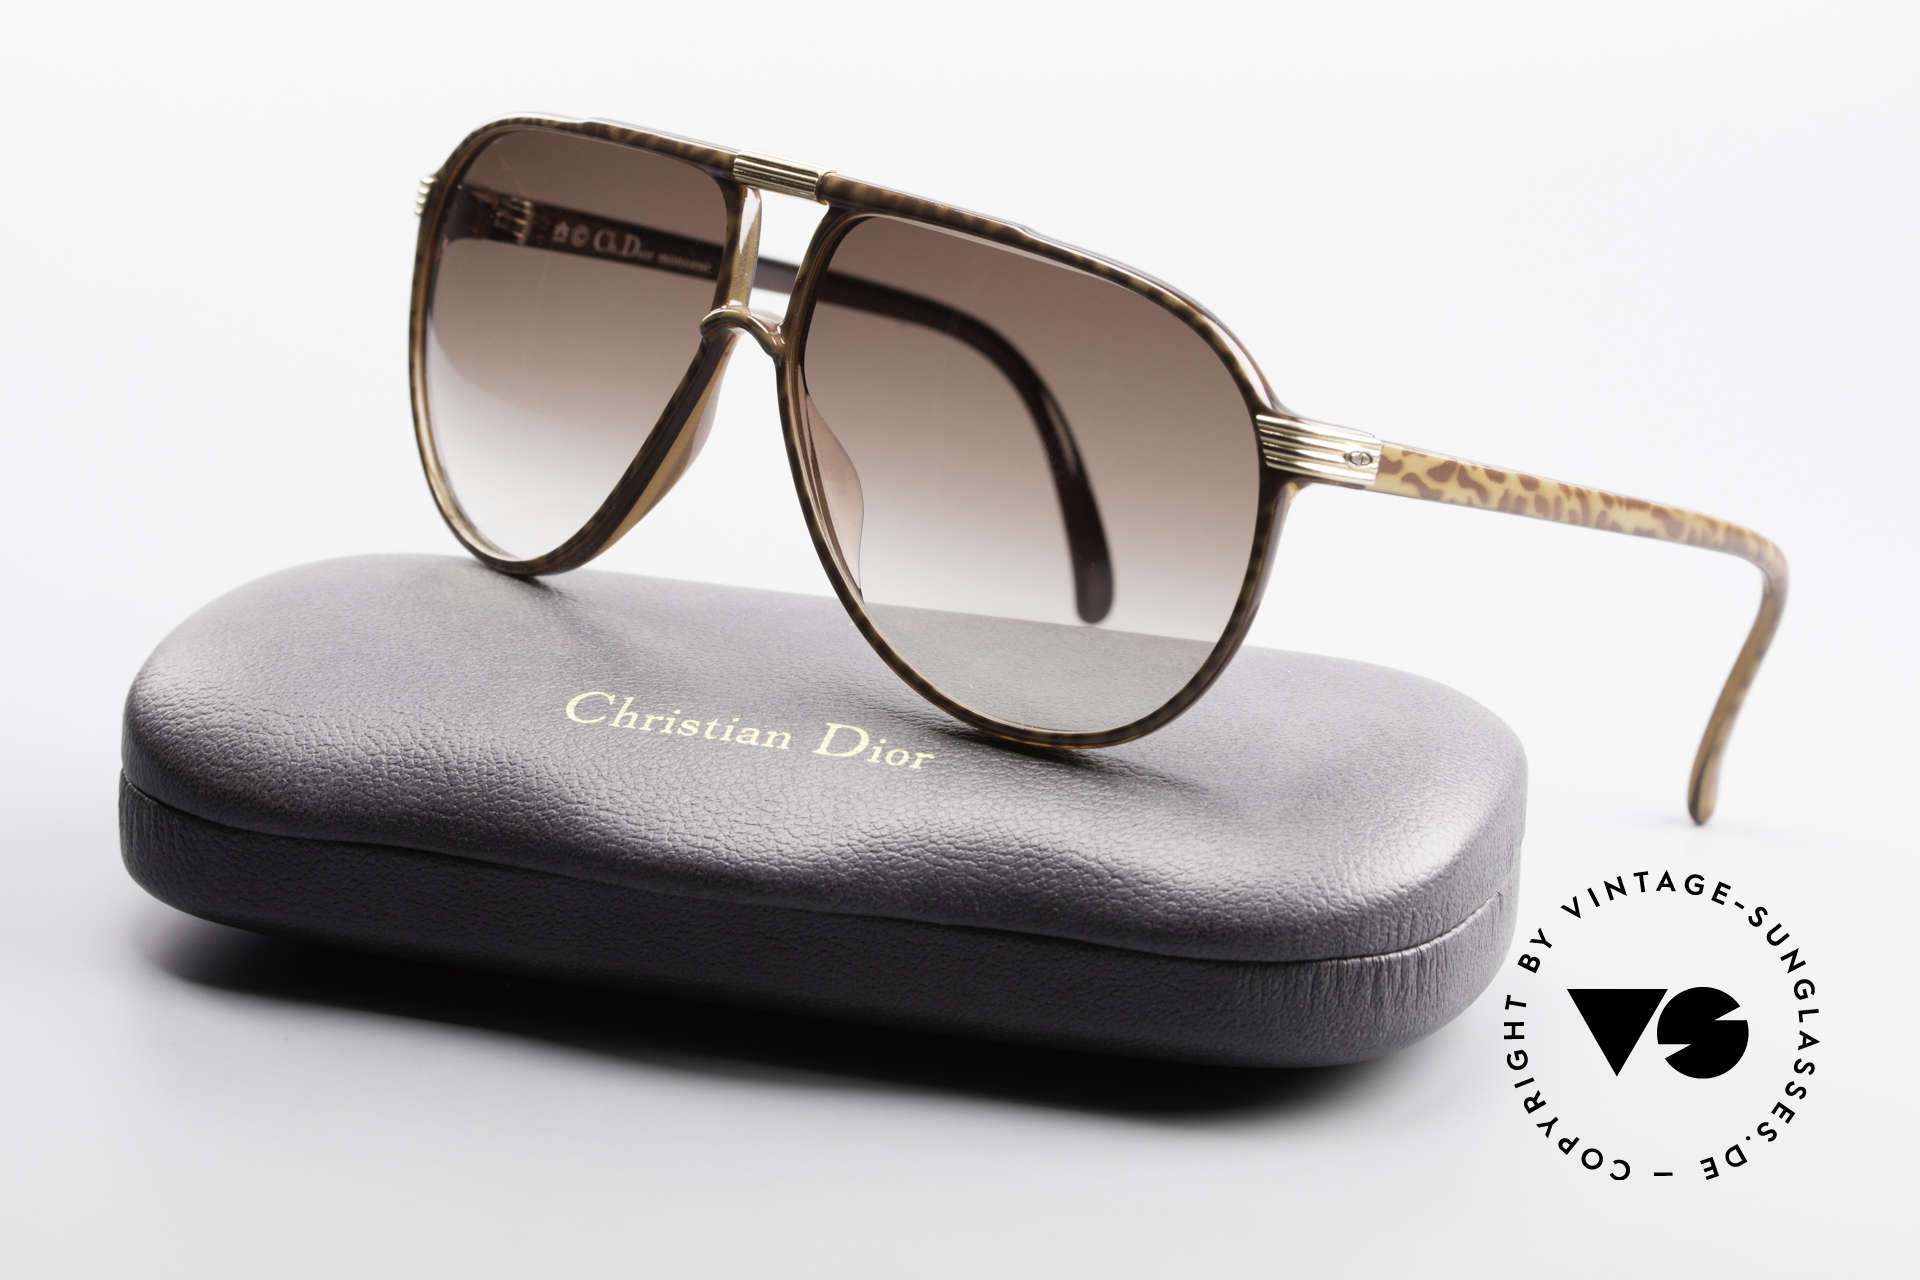 Christian Dior 2300 80's Aviator Sunglasses, SMALL size 58/10 with noble 'horn/brown' coloring, Made for Men